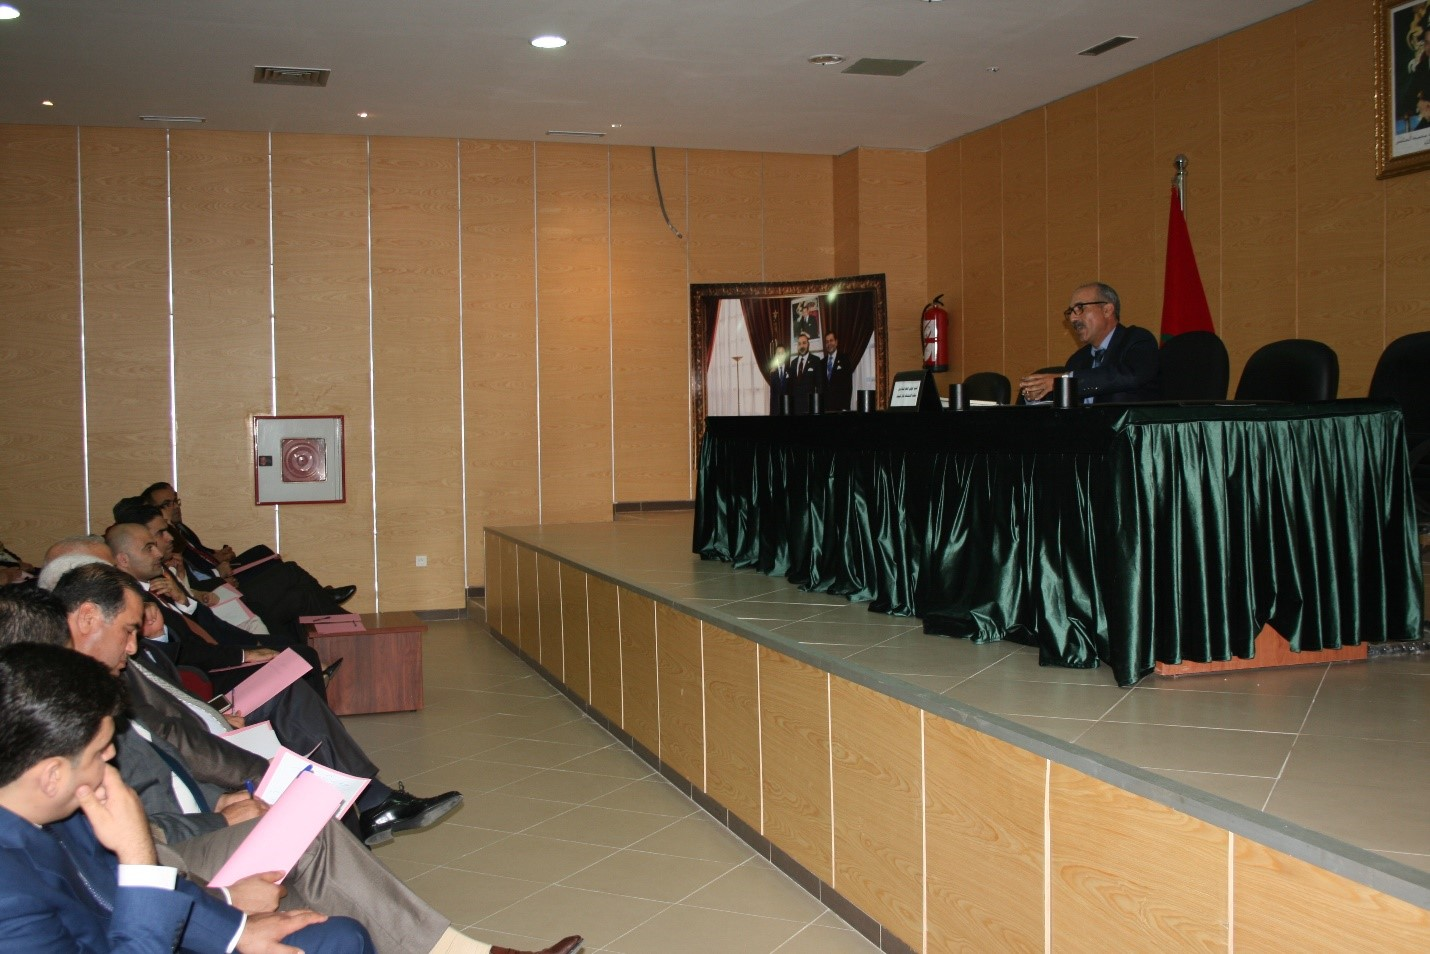 Palestinian Judges Visit Morocco to Widen Perspectives on VAW Specialized Judicial Services